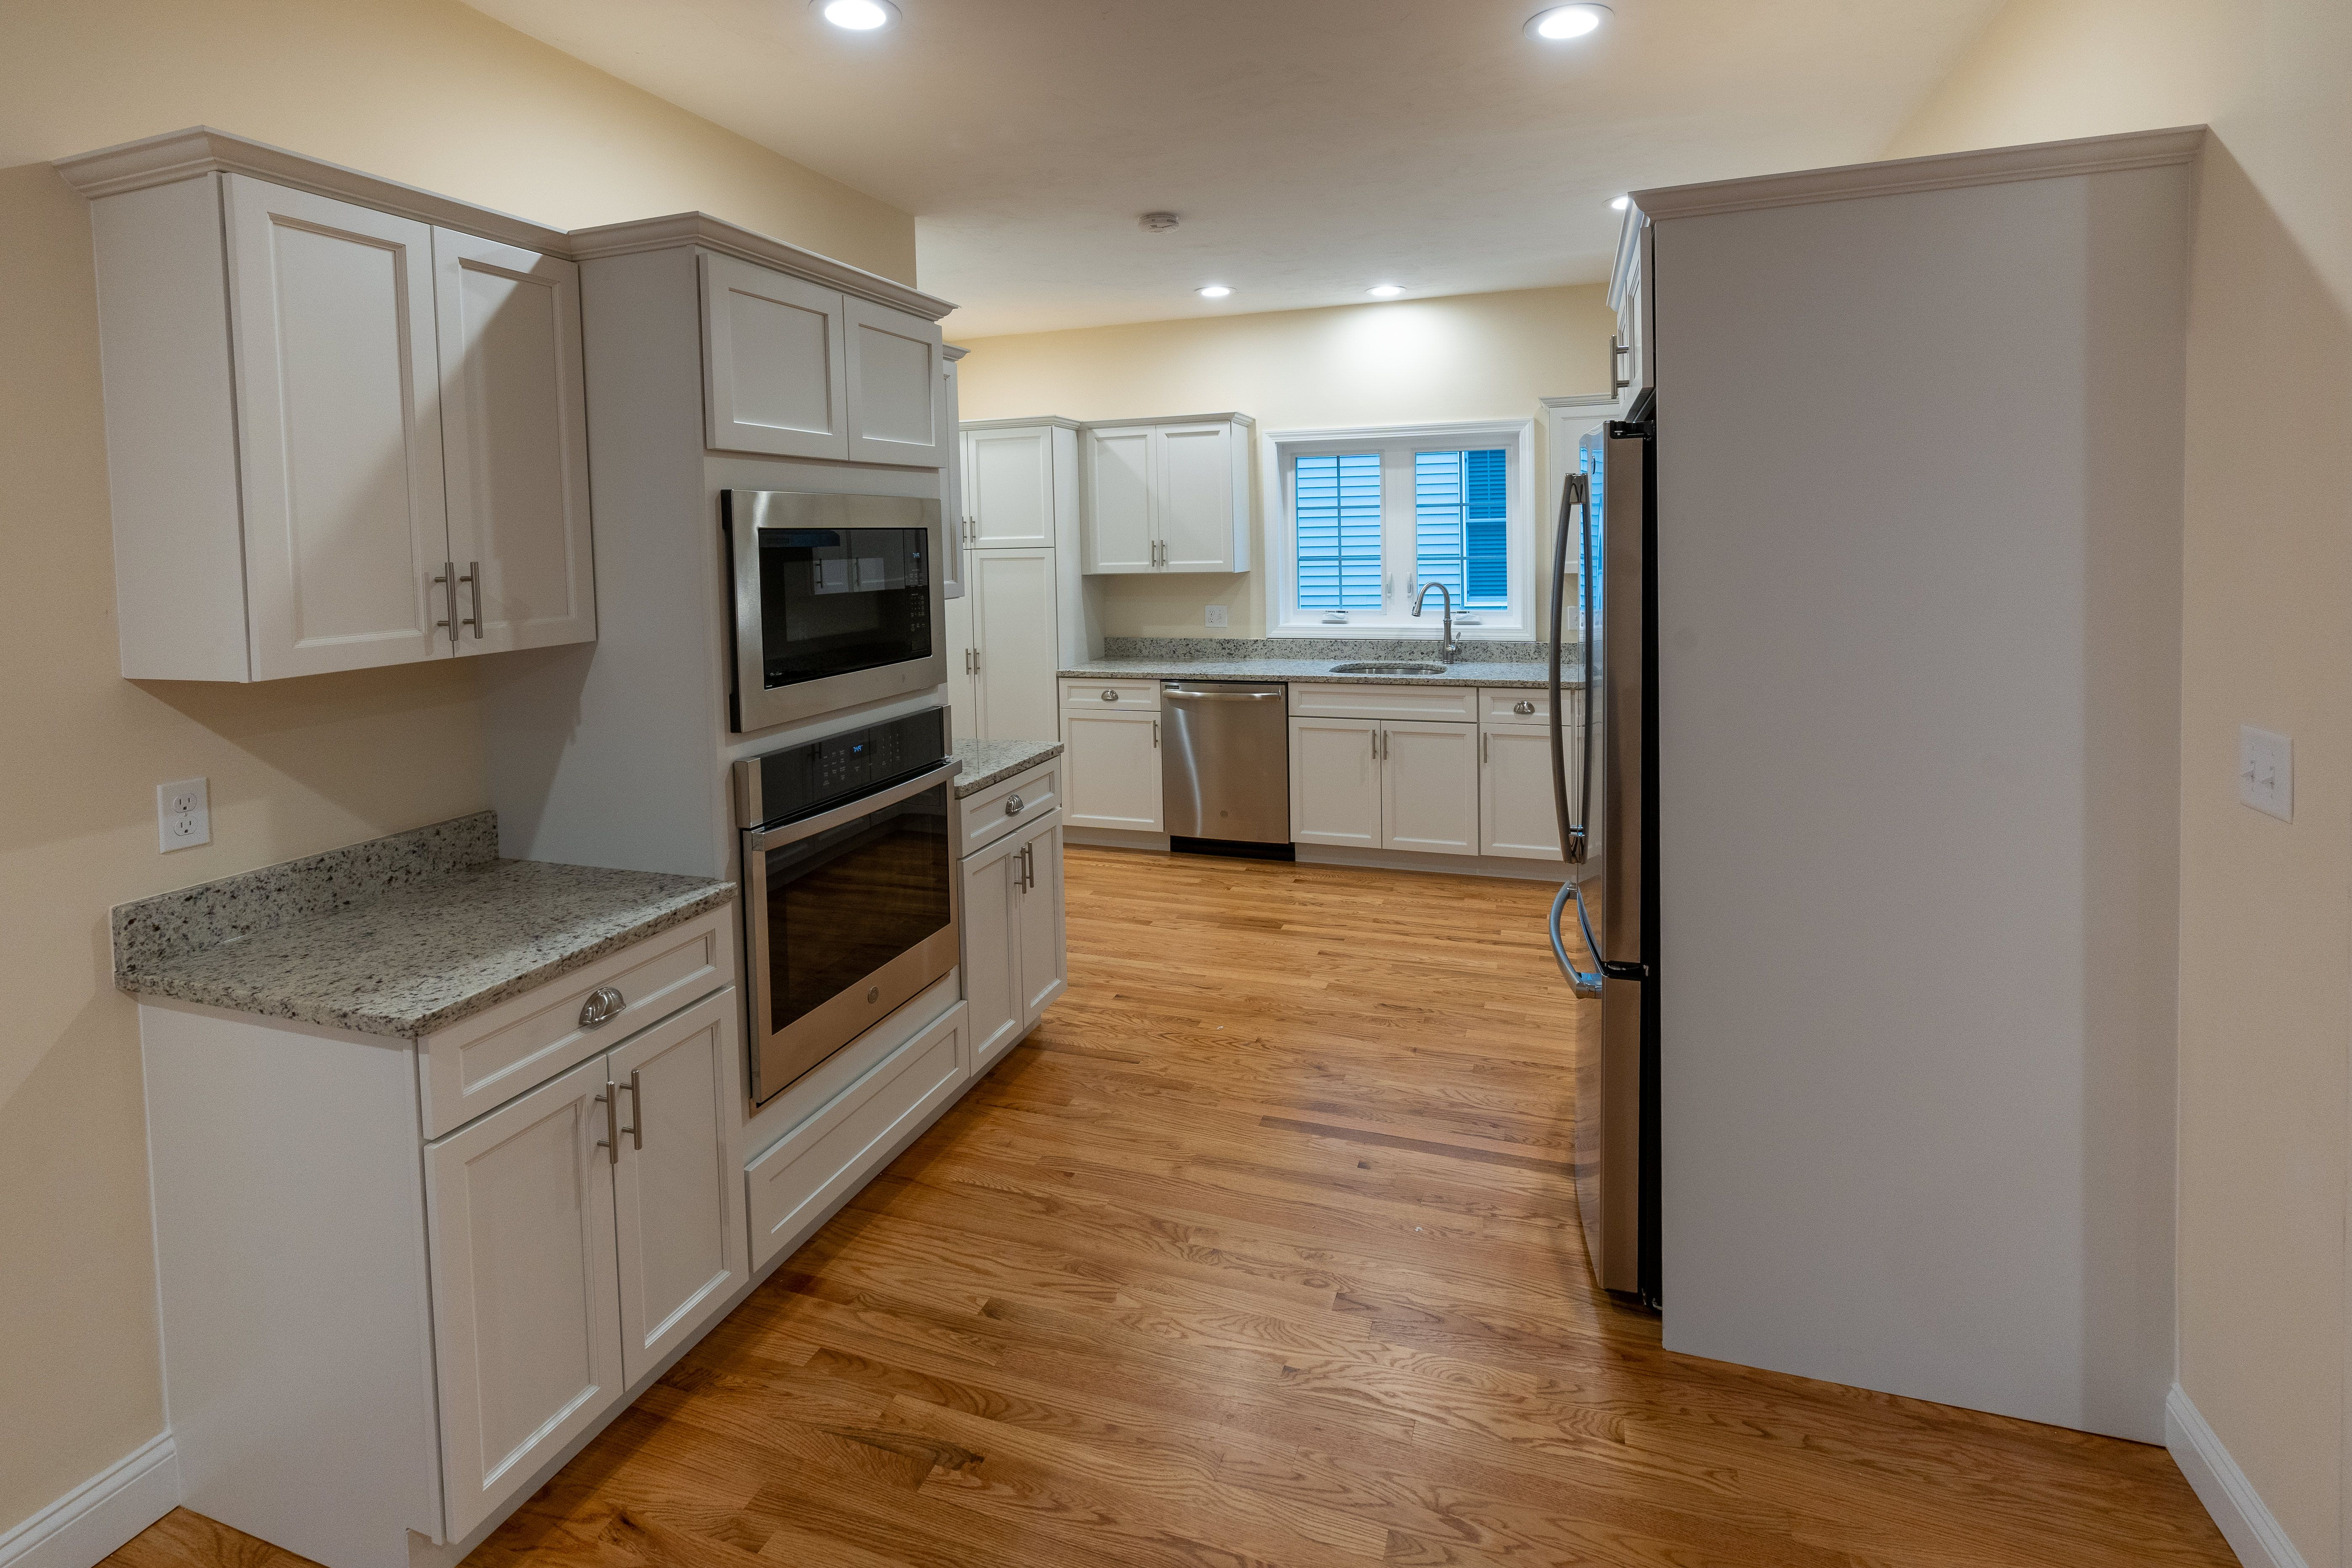 Kitchen featured in The Ranch Standard By Fafard Real Estate in Worcester, MA